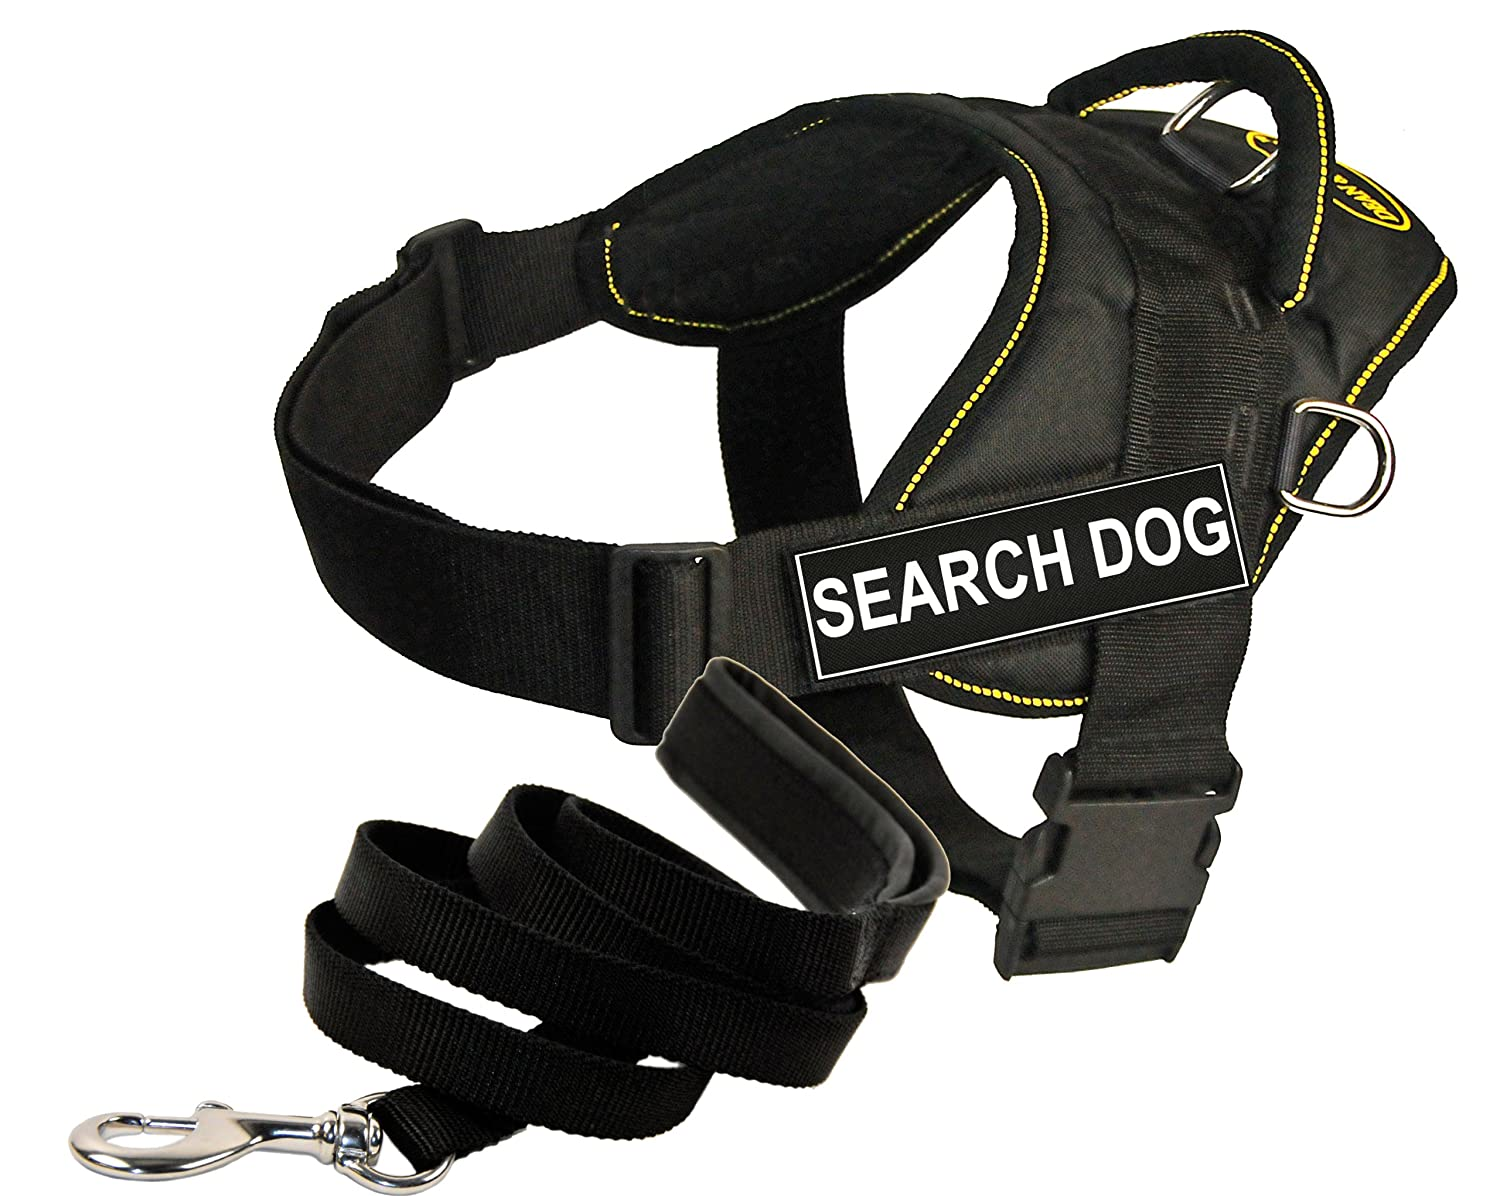 Dean & Tyler Bundle One DT Fun Works  Harness, Search Dog, Yellow Trim, Medium + One Padded Puppy  Leash, 6-Feet Stainless Steel Snap, Black